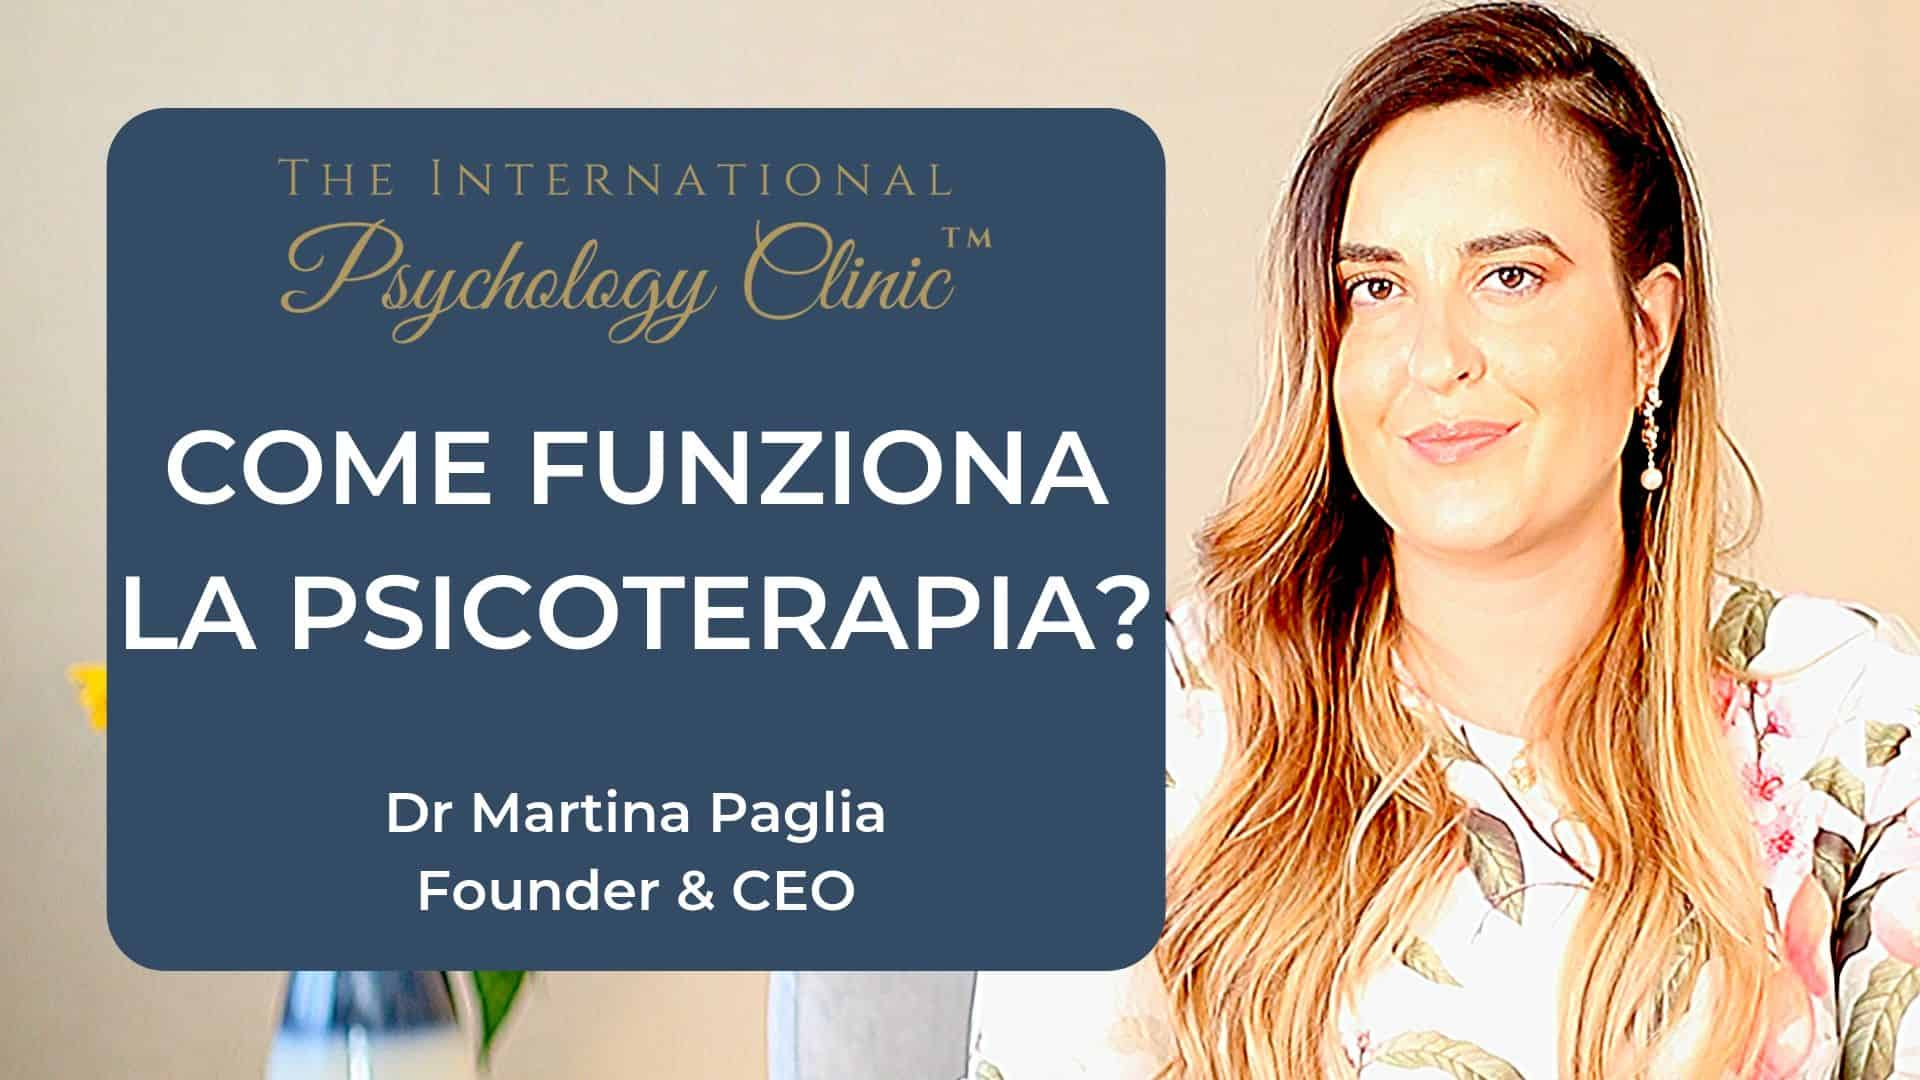 Martina Paglia come funziona la psicoterapia the Italian psychology clinic il tuo psicologo italiano a Londra